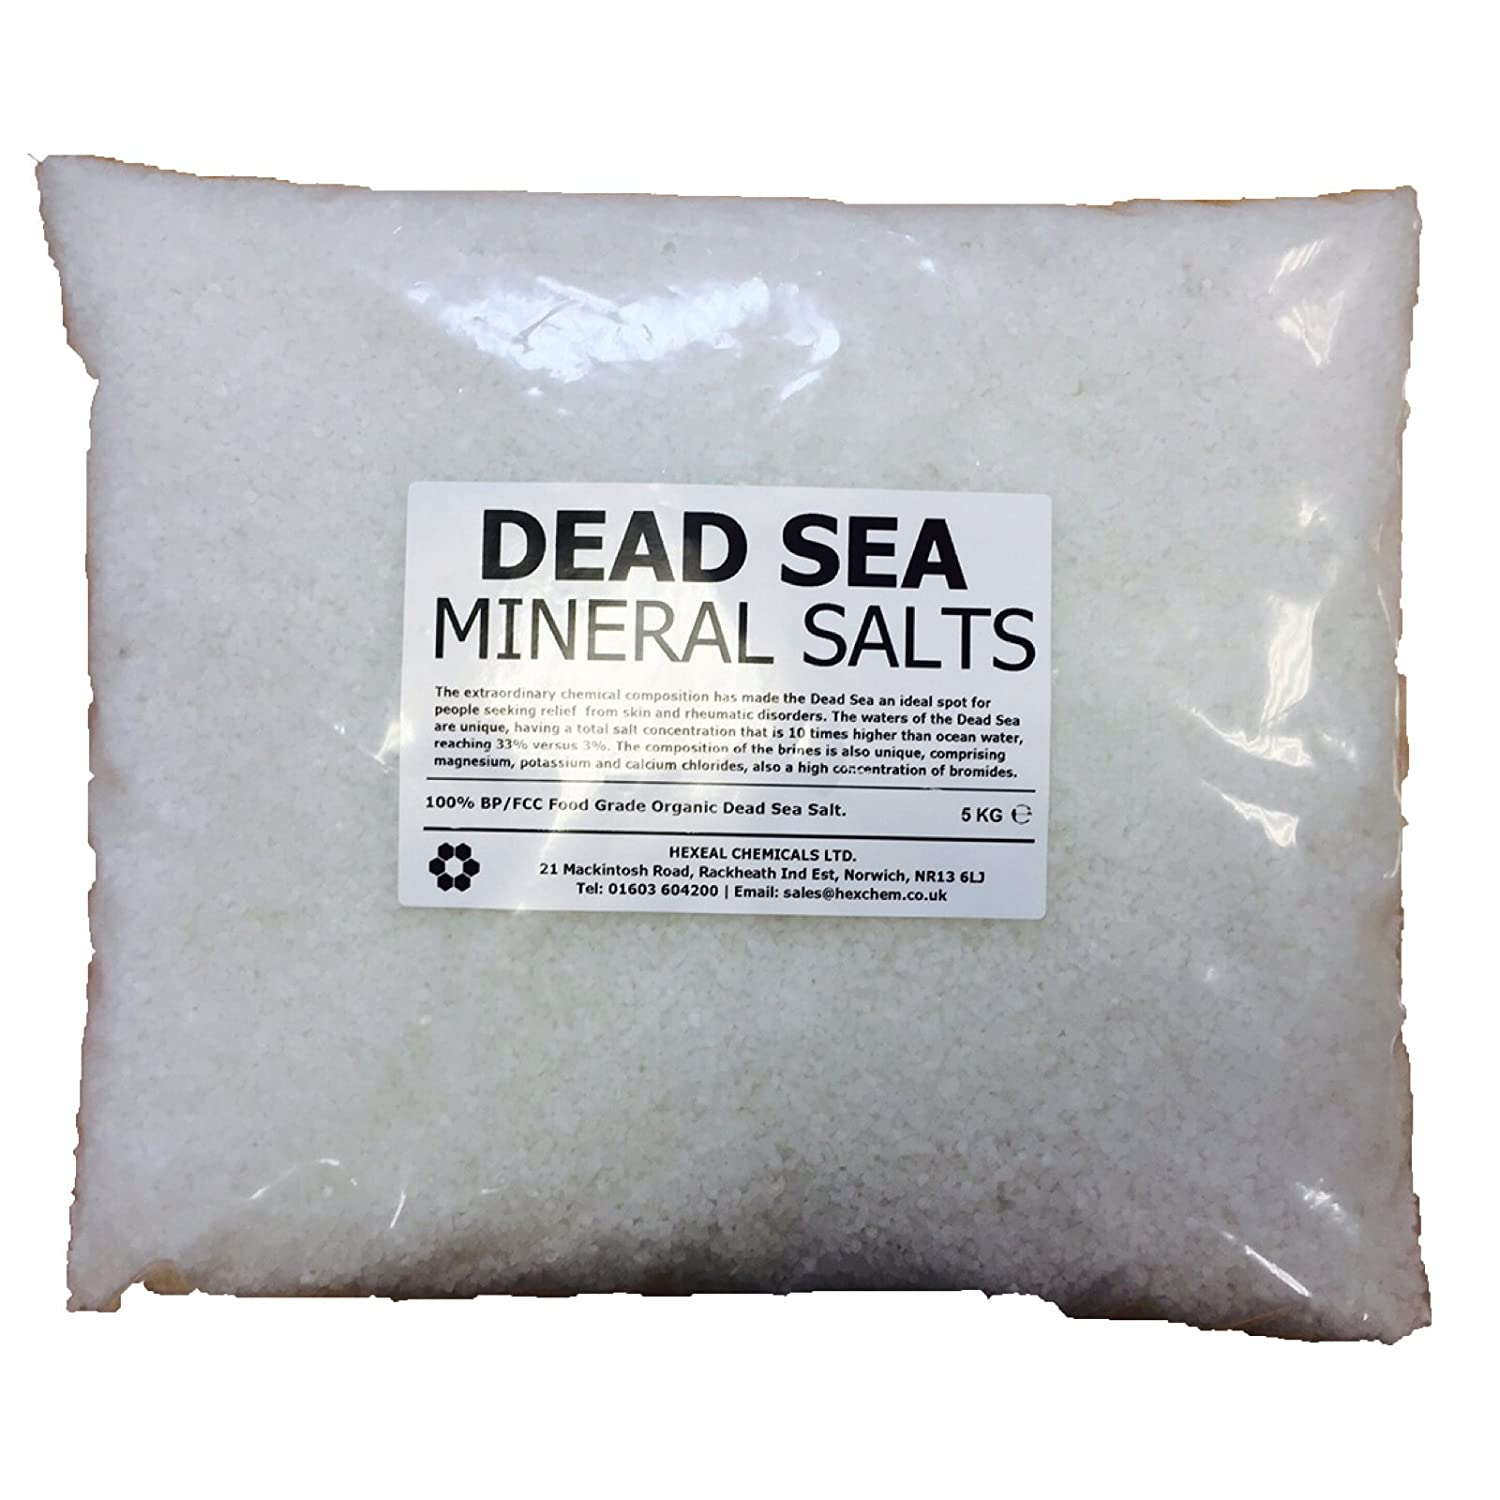 DEAD SEA SALT | 20KG BAG | 100% Natural | FCC Food Grade Dead Sea Works Ltd.